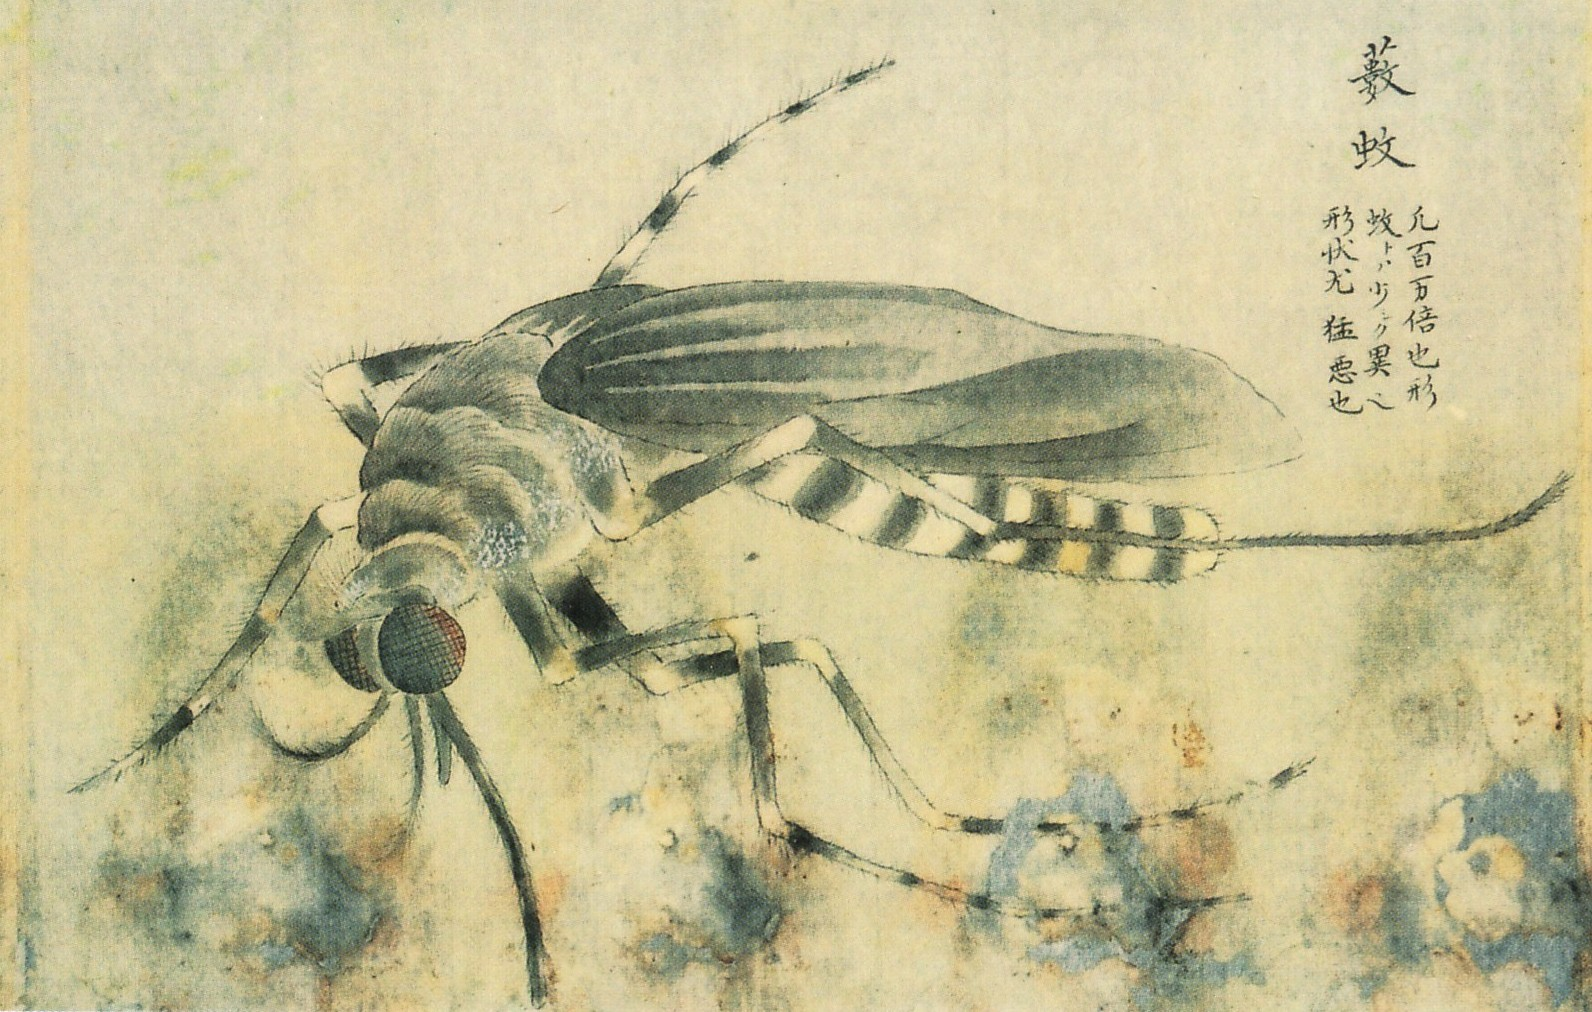 Vintage Insect 59